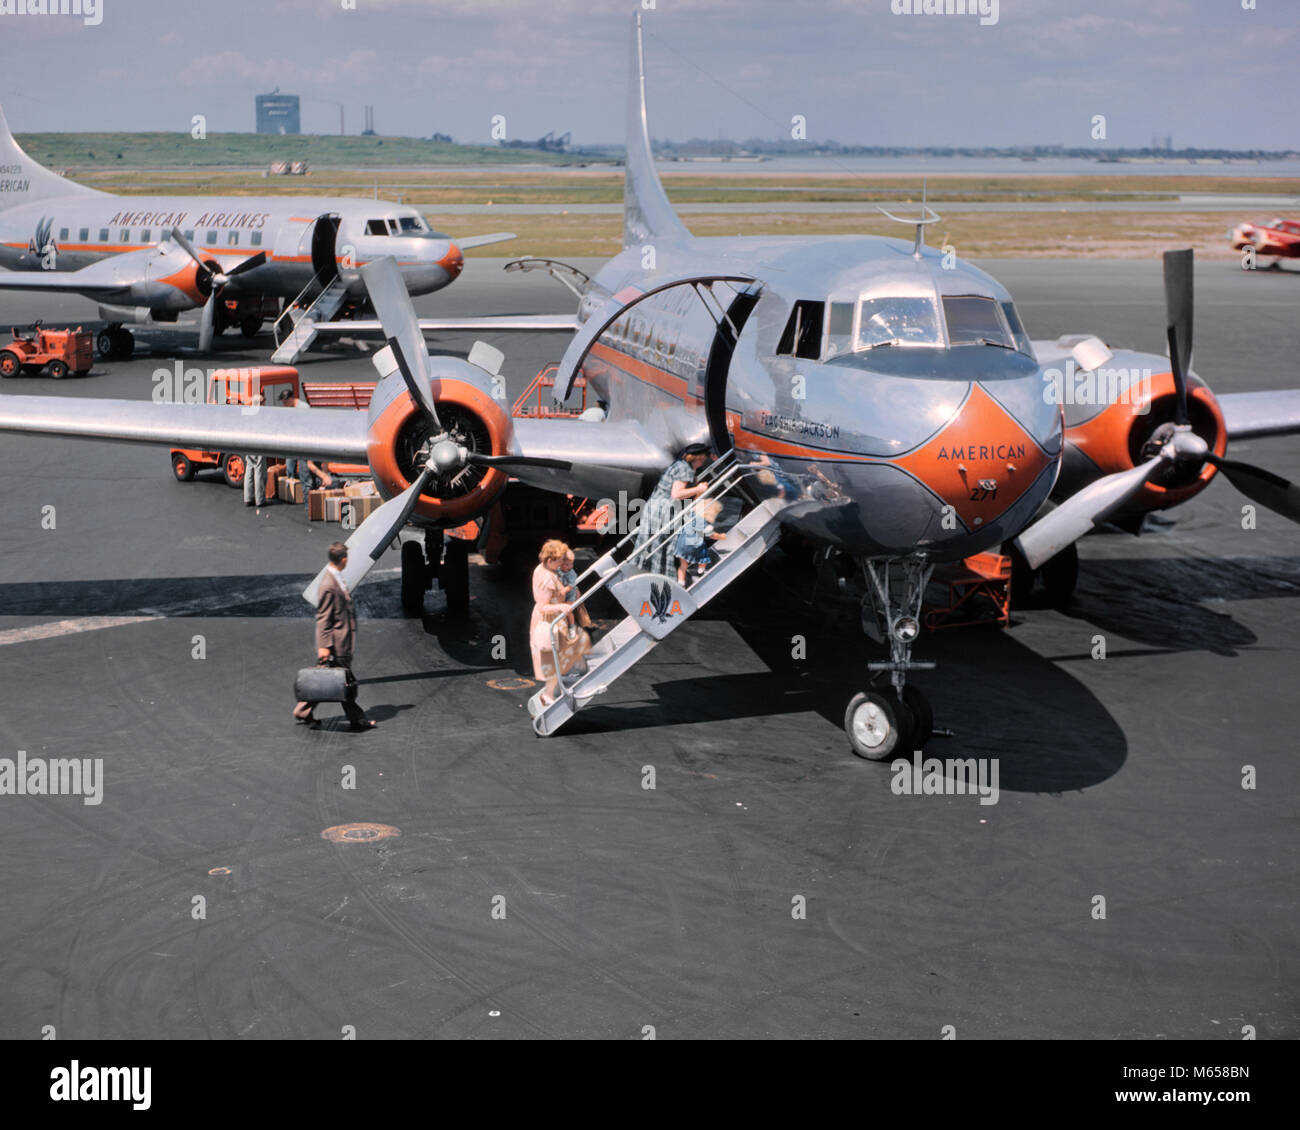 1950s TWO AMERICAN AIRLINE PROPELLER AIRPLANES ON TARMAC WITH PASSENGERS CLIMBING ABOARD LAGUARDIA AIRPORT NEW YORK - Stock Image